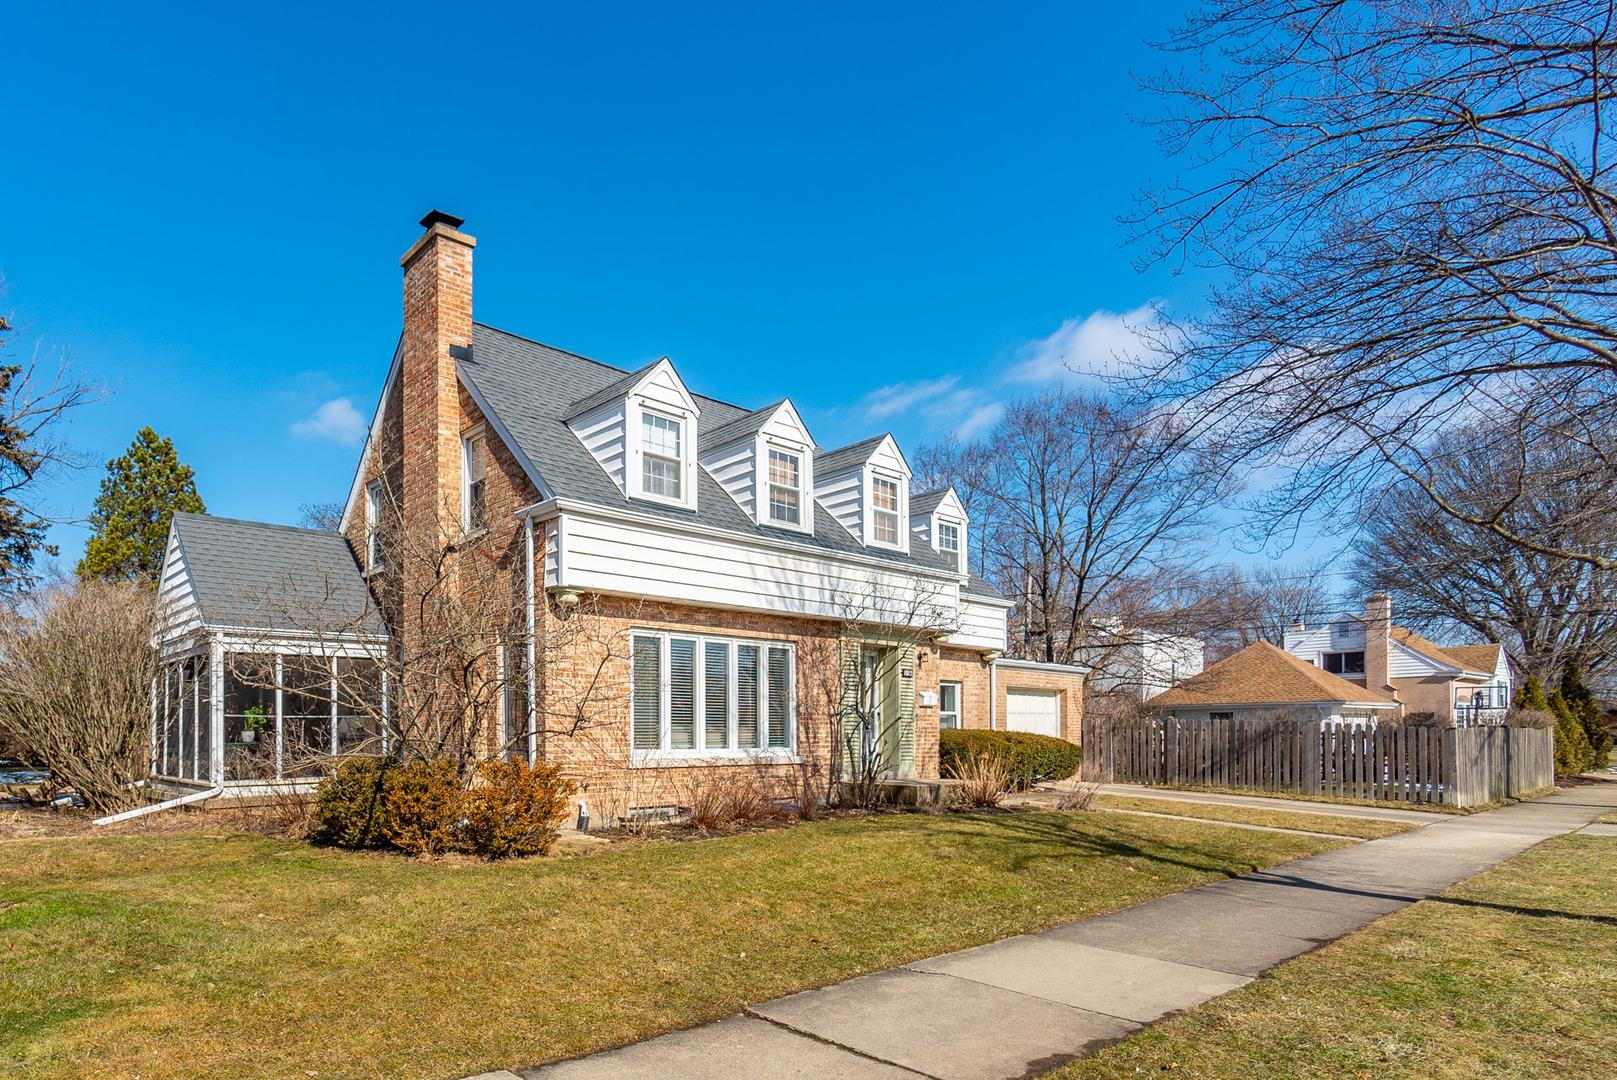 1015 S Lincoln Avenue, Park Ridge, IL 60068 - #: 10857802